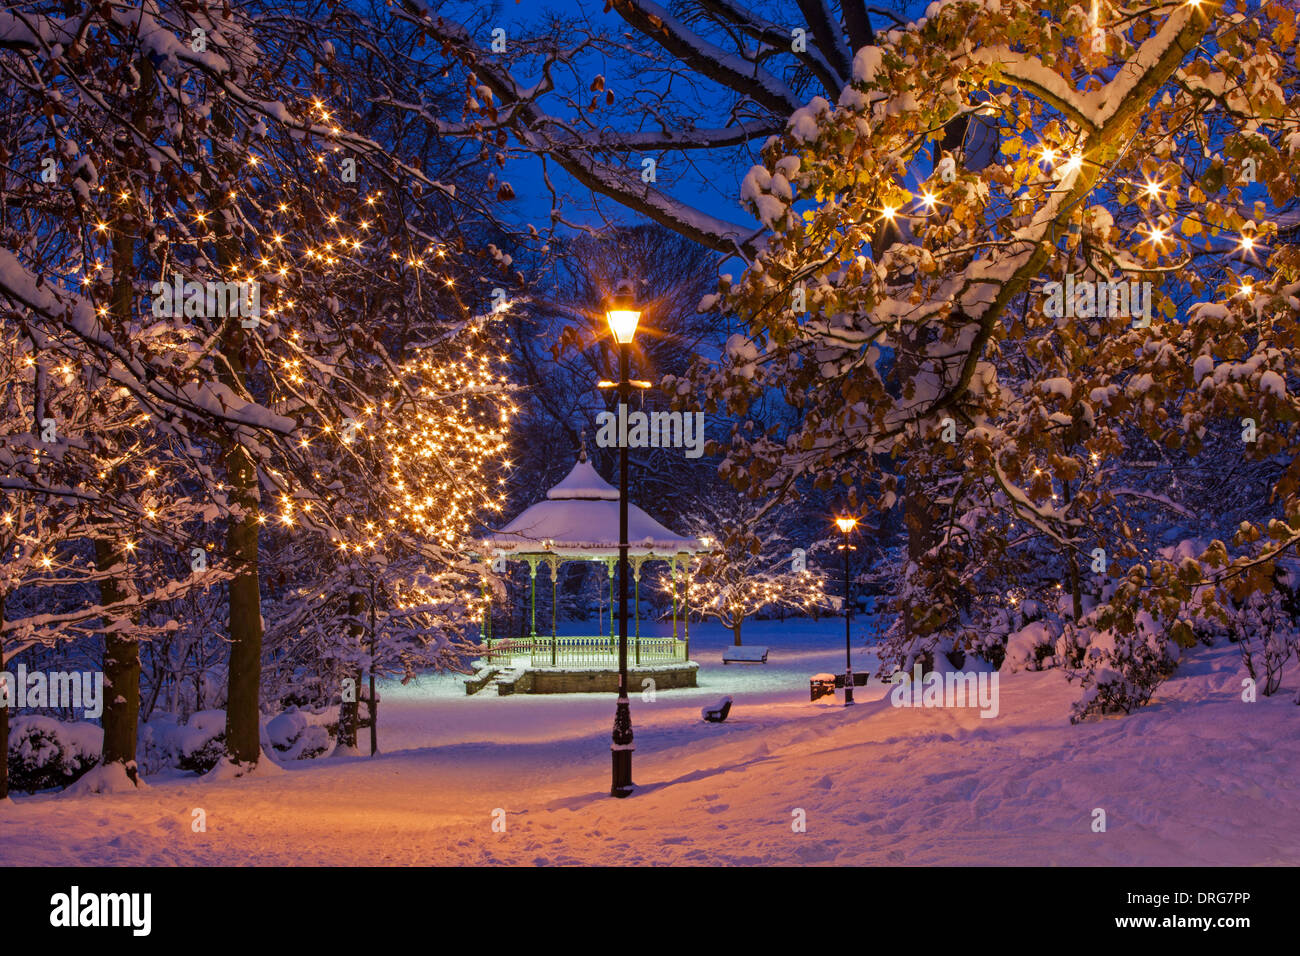 The Bandstand at Hexham in Winter snow & floodlit at dusk, Northumberland - Stock Image